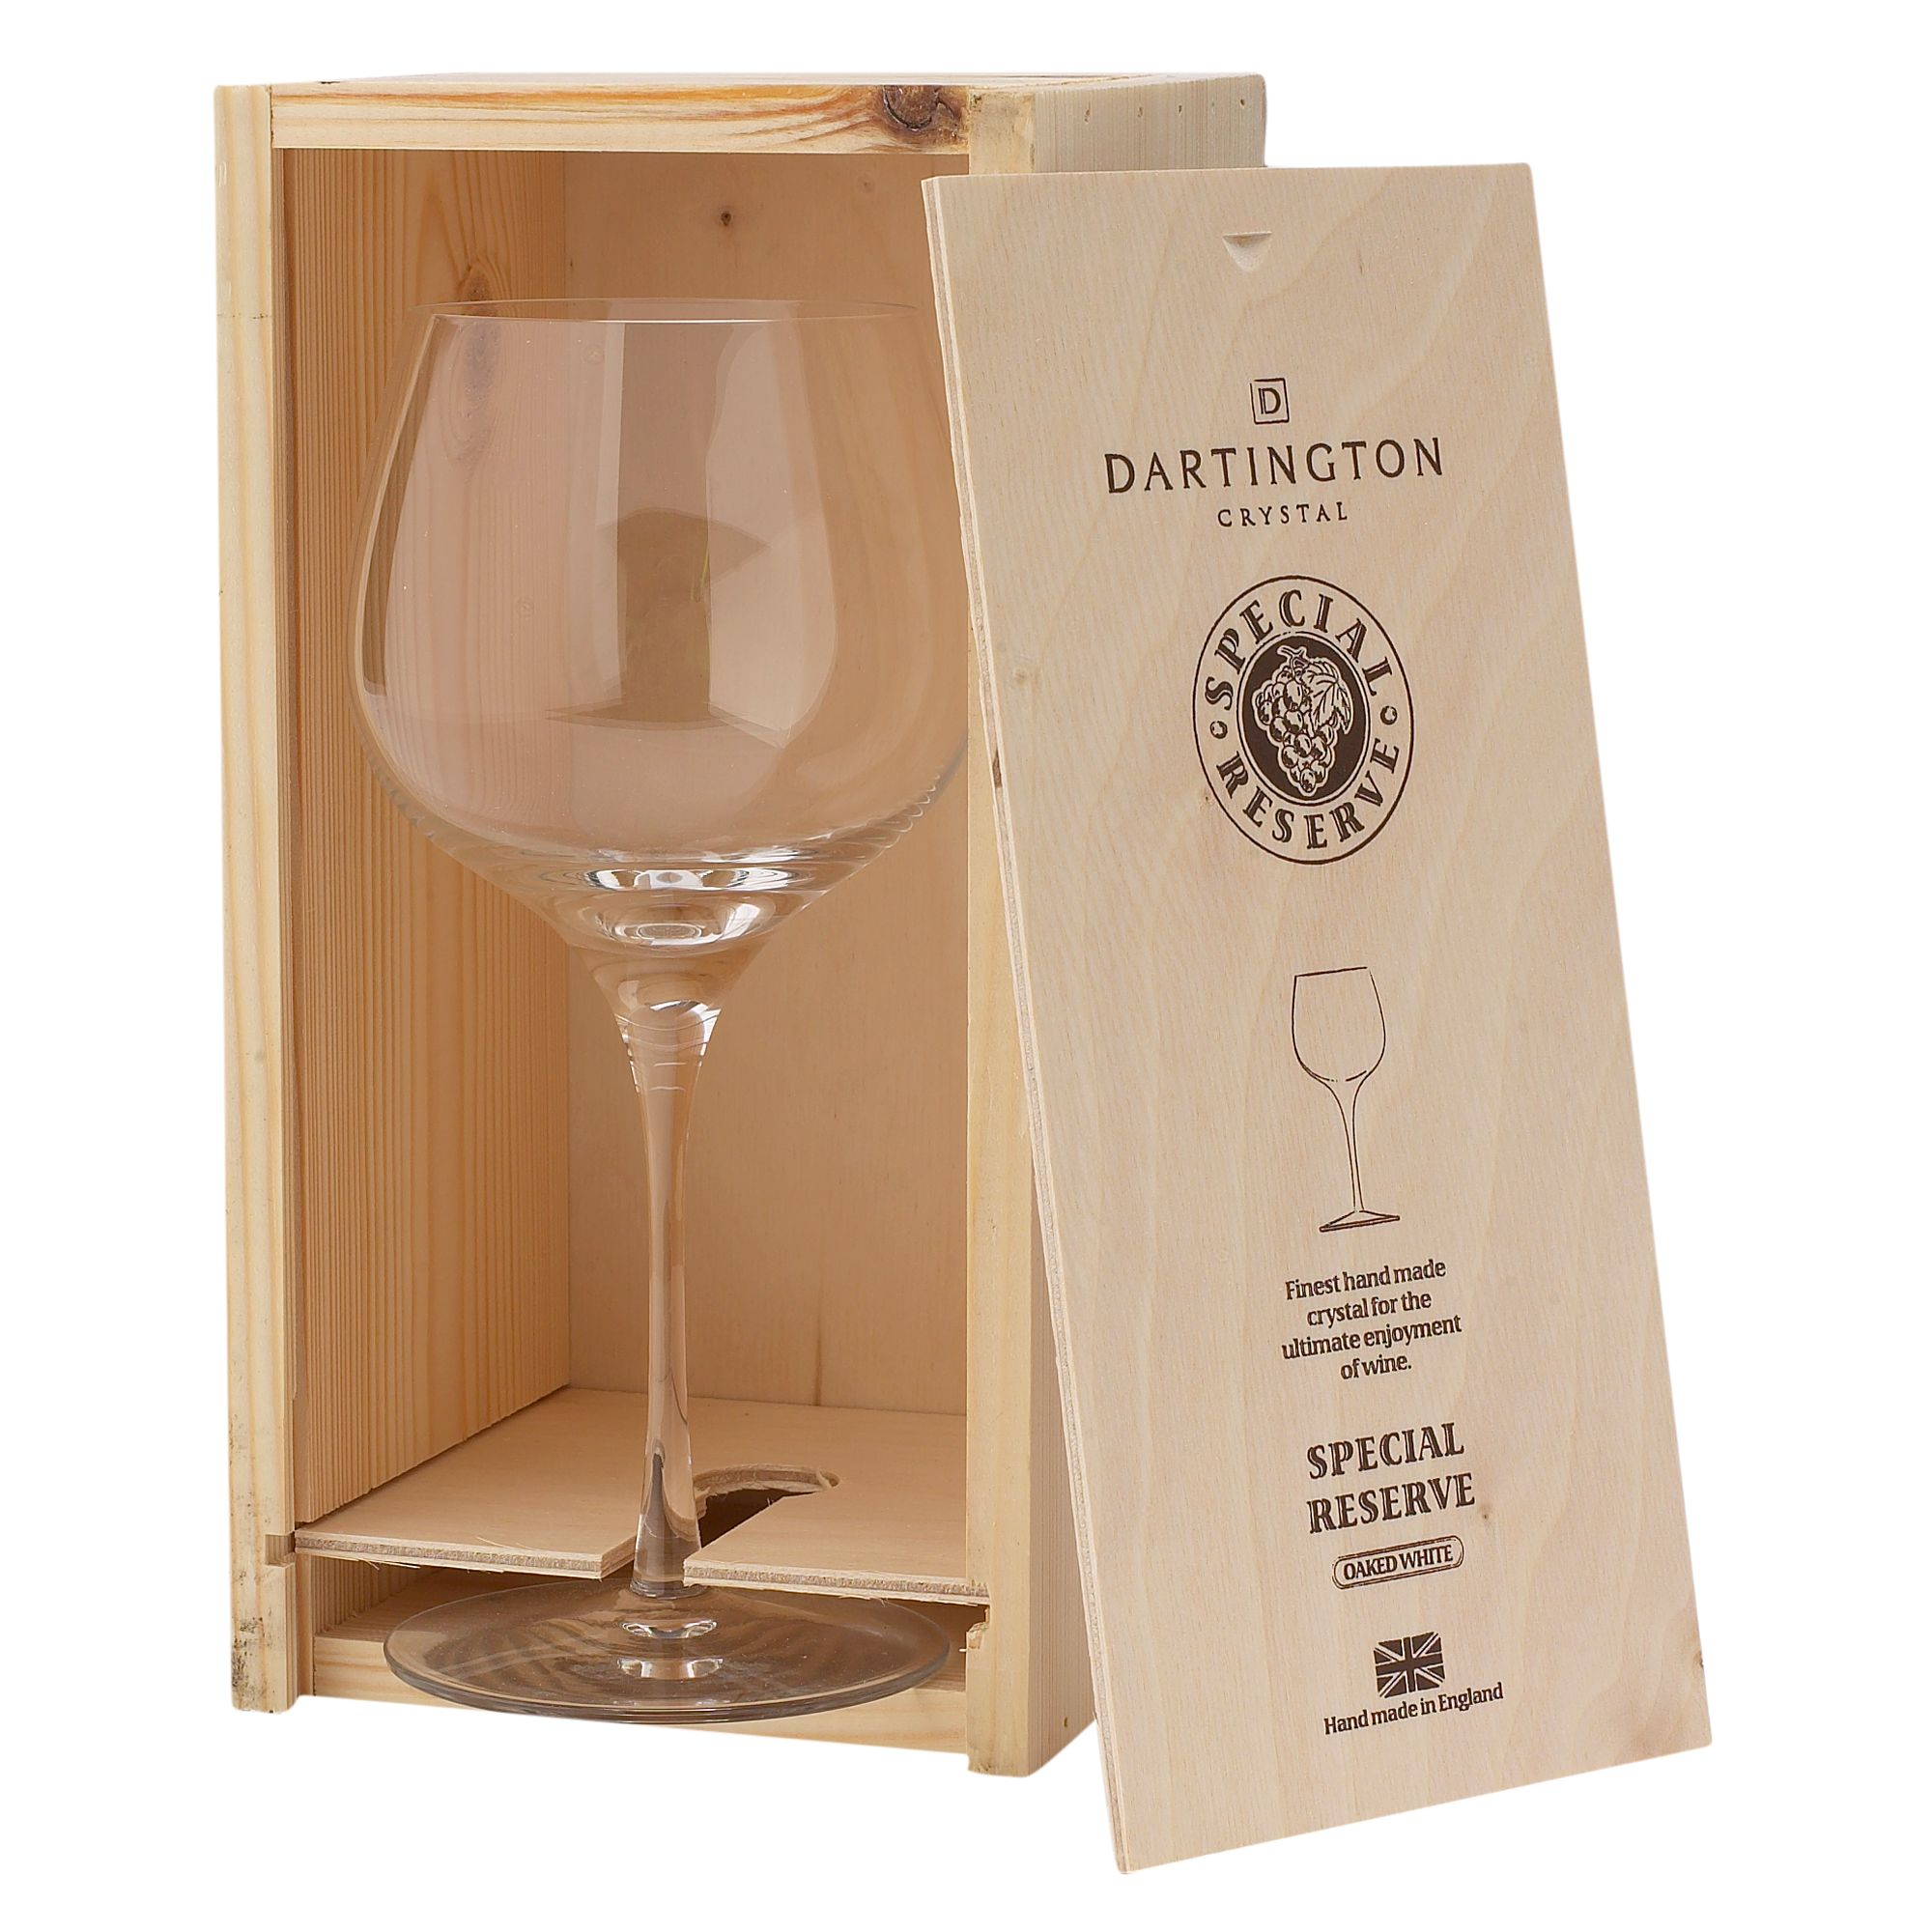 Linea Dartington Special Reserve Rhone/Shiraz wine glass